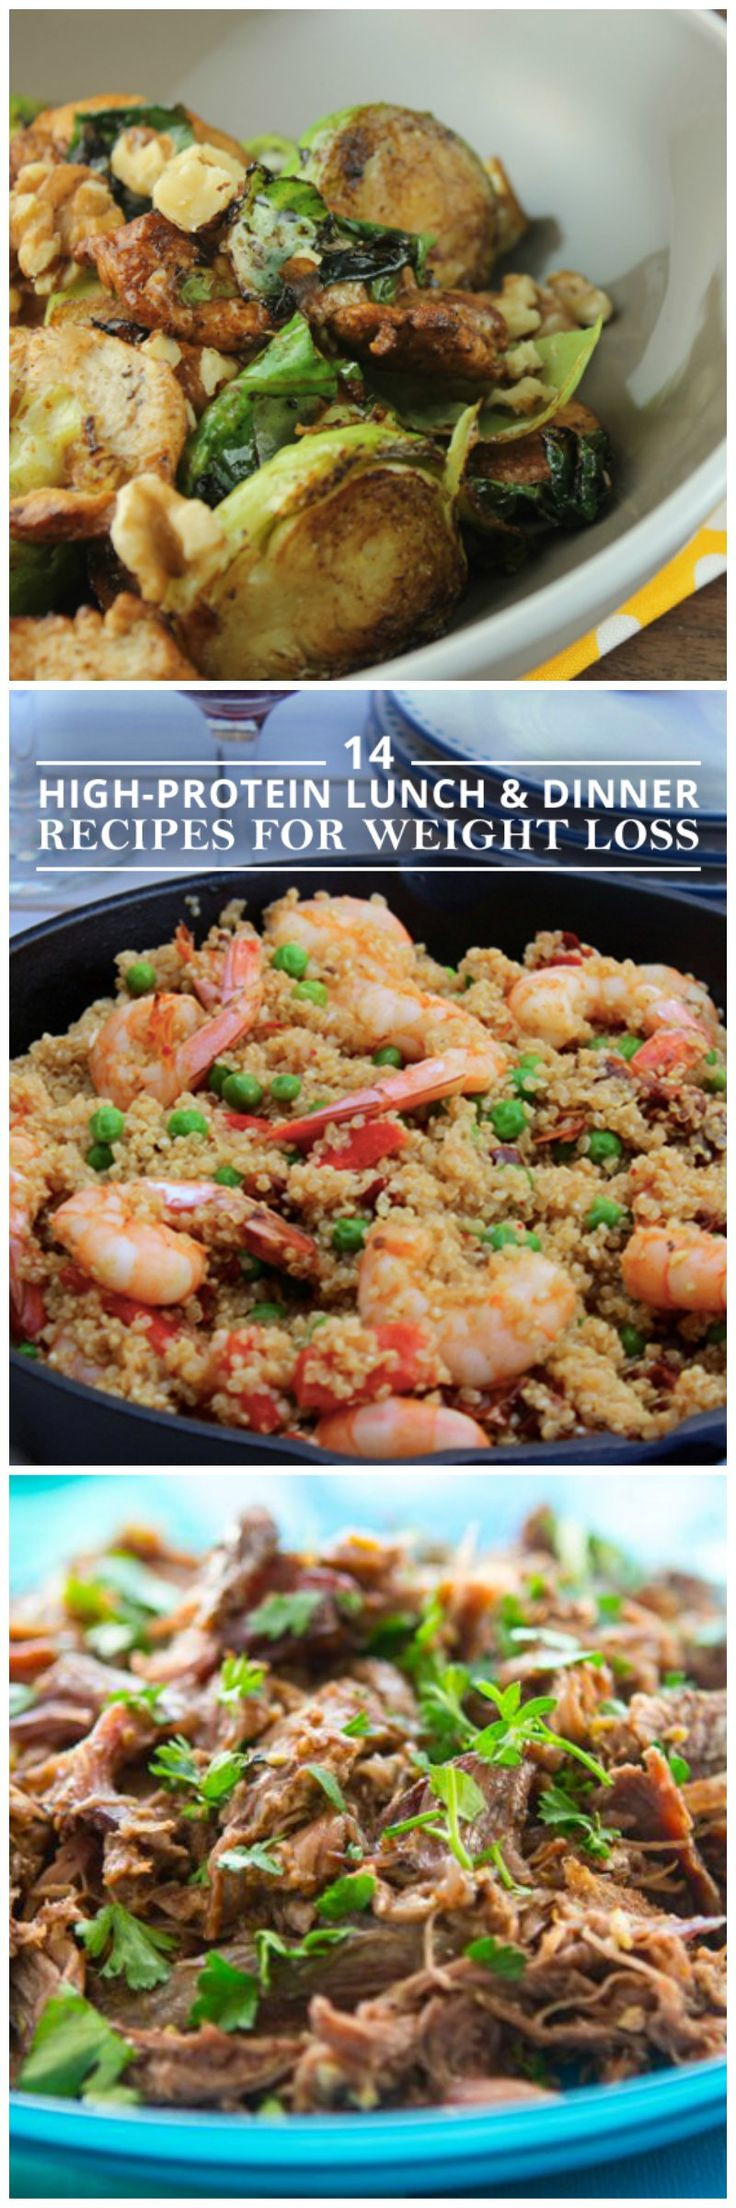 Protein Dinners For Weight Loss  14 High Protein Lunch and Dinner Recipes for Weight Loss